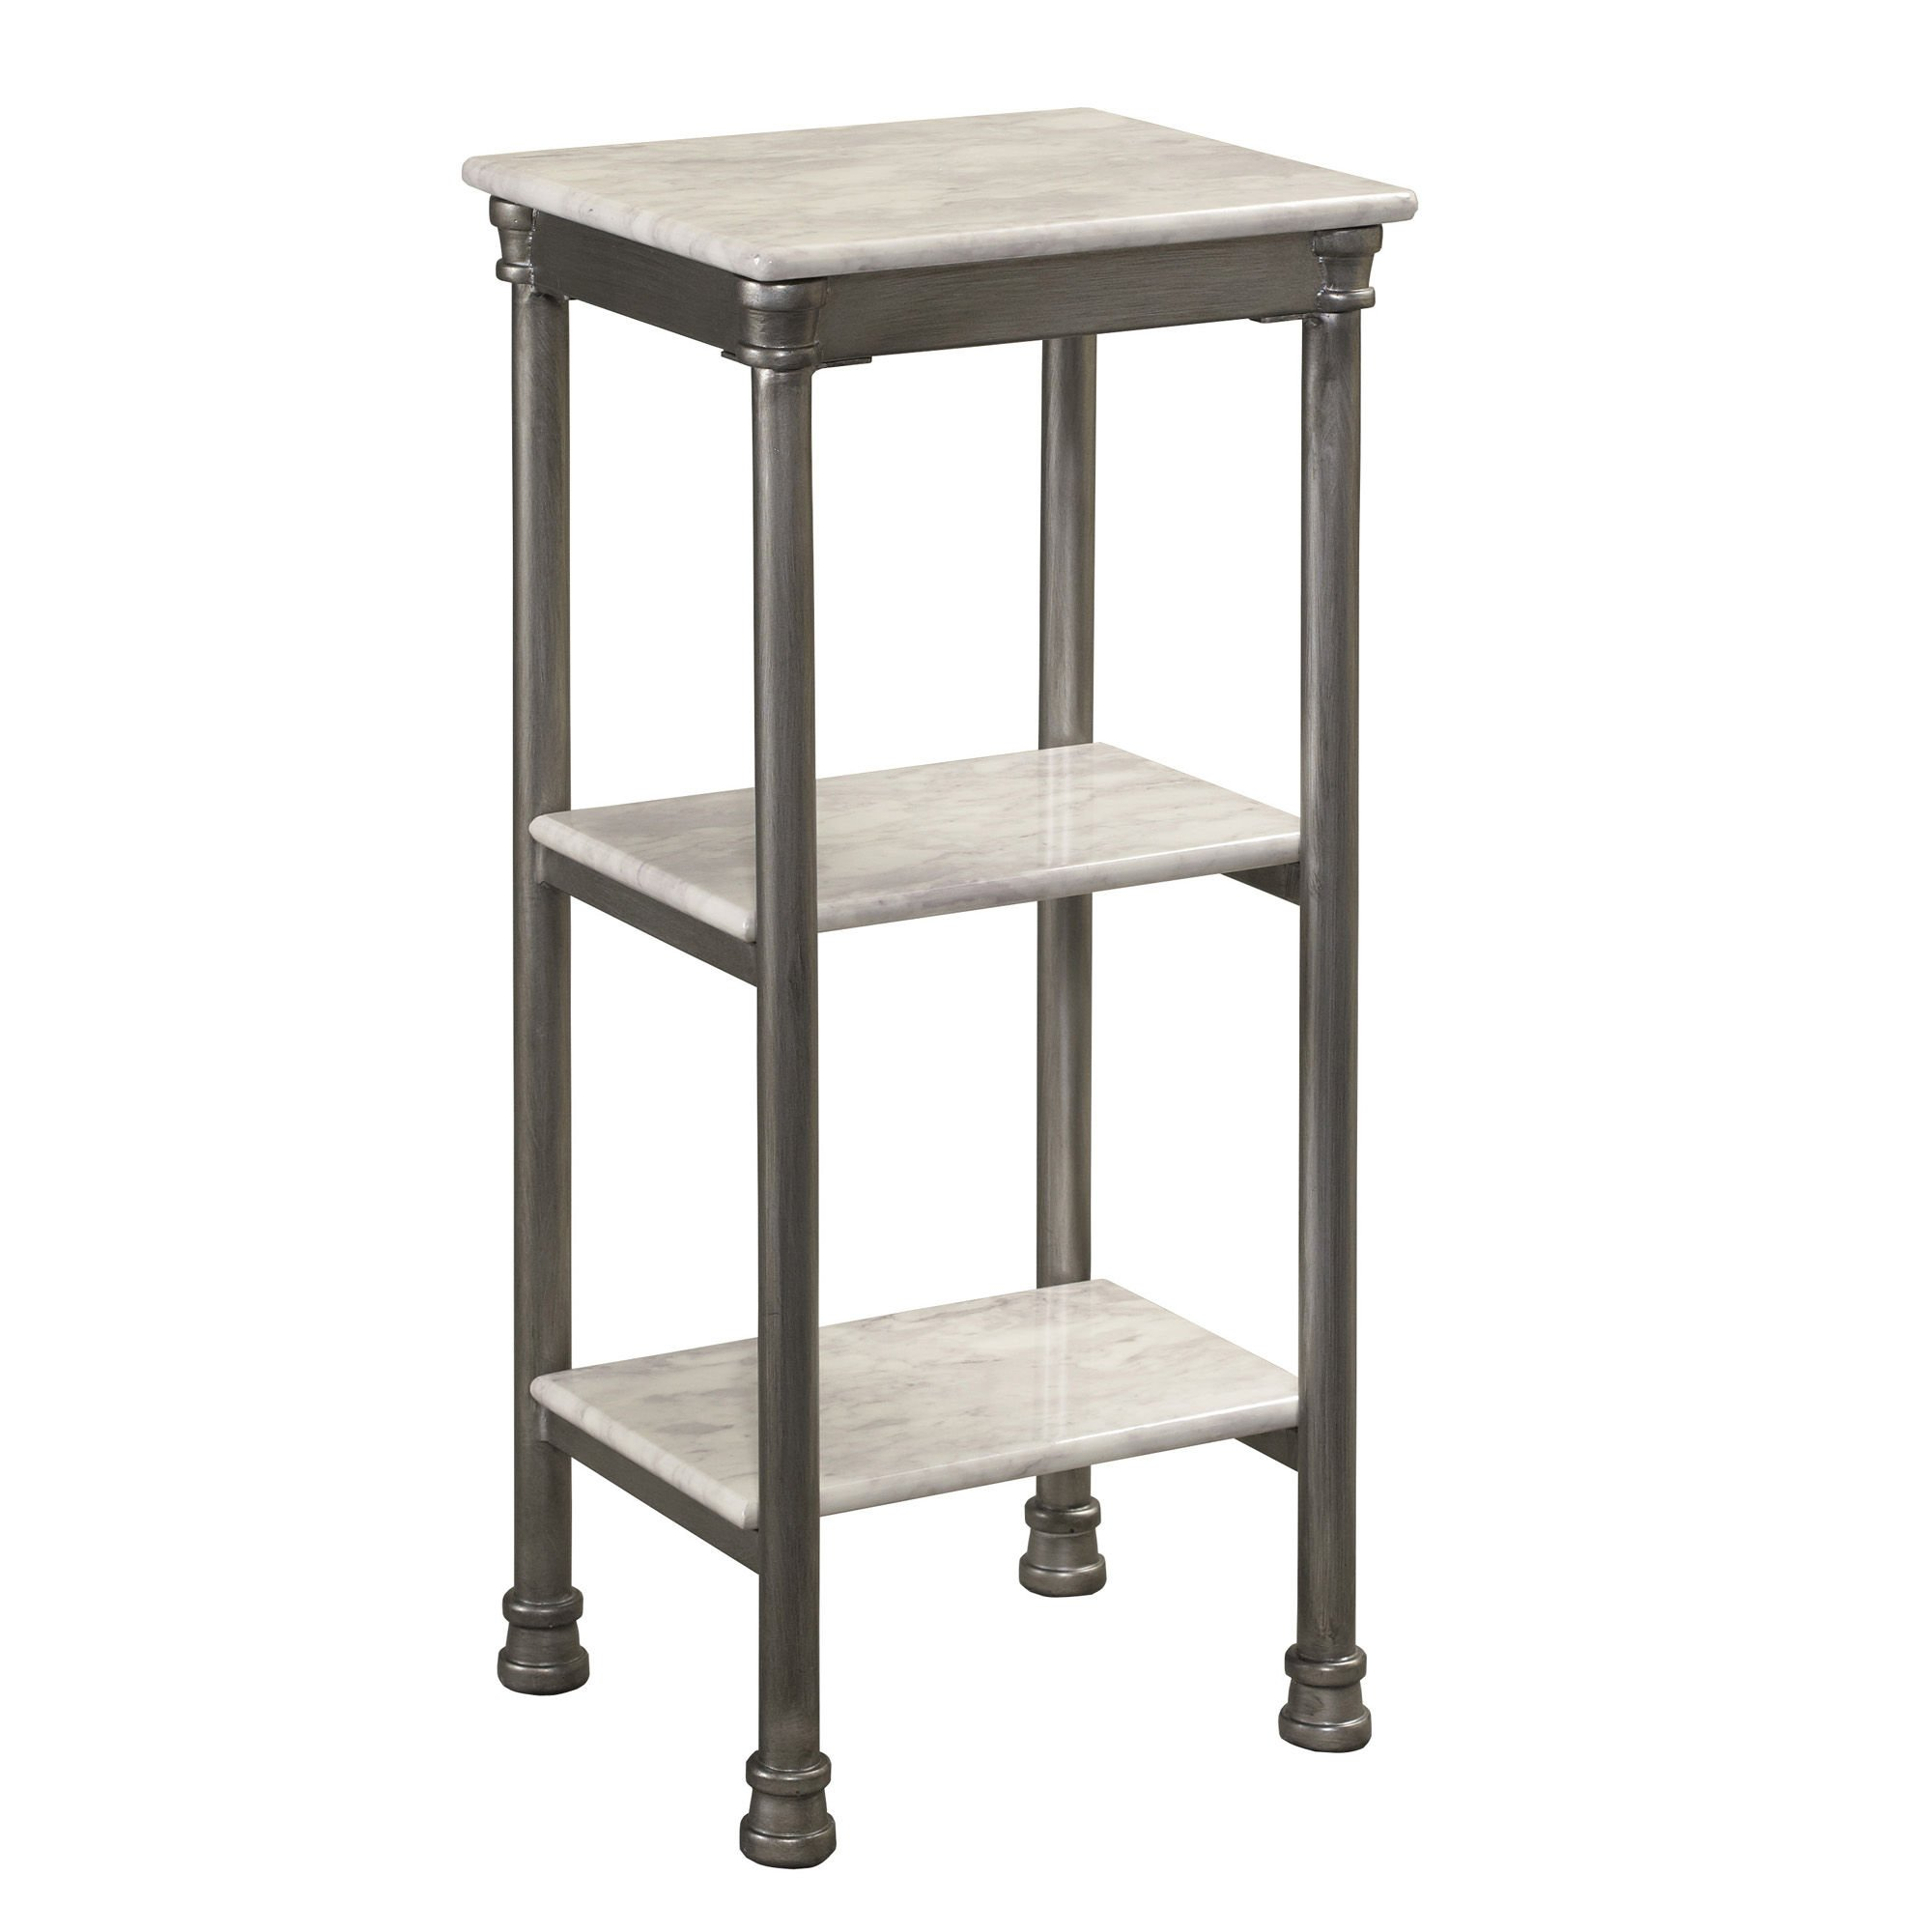 'The Orleans' Bathroom 3-tier Tower Bathroom Shelf Organizer